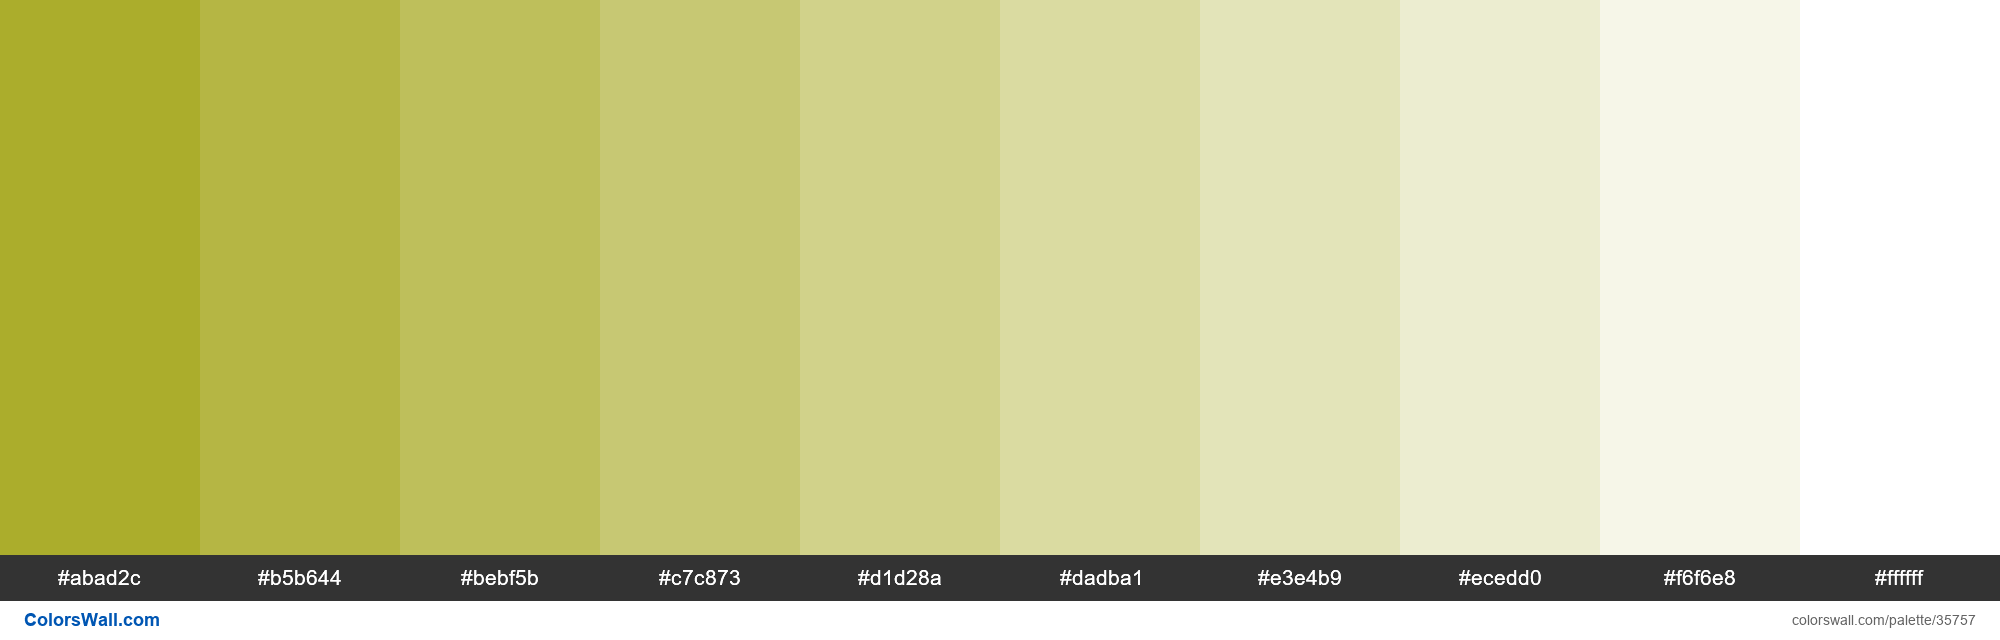 Tints XKCD Color vomit #a2a415 hex - #35757